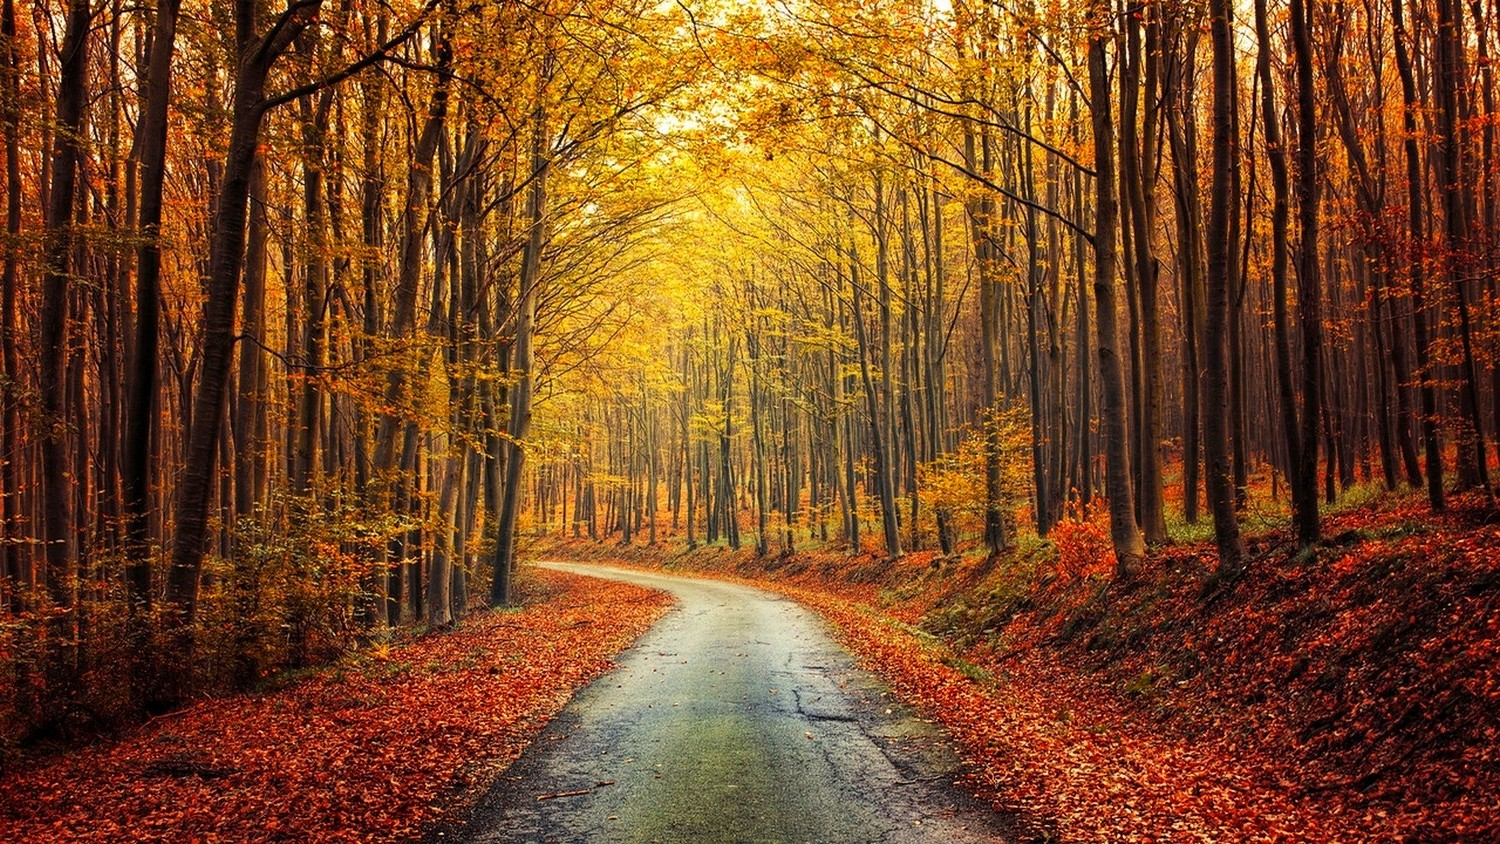 Free Fall Images Desktop Wallpaper Nature Landscape Fall Forest Road Red Yellow Leaves